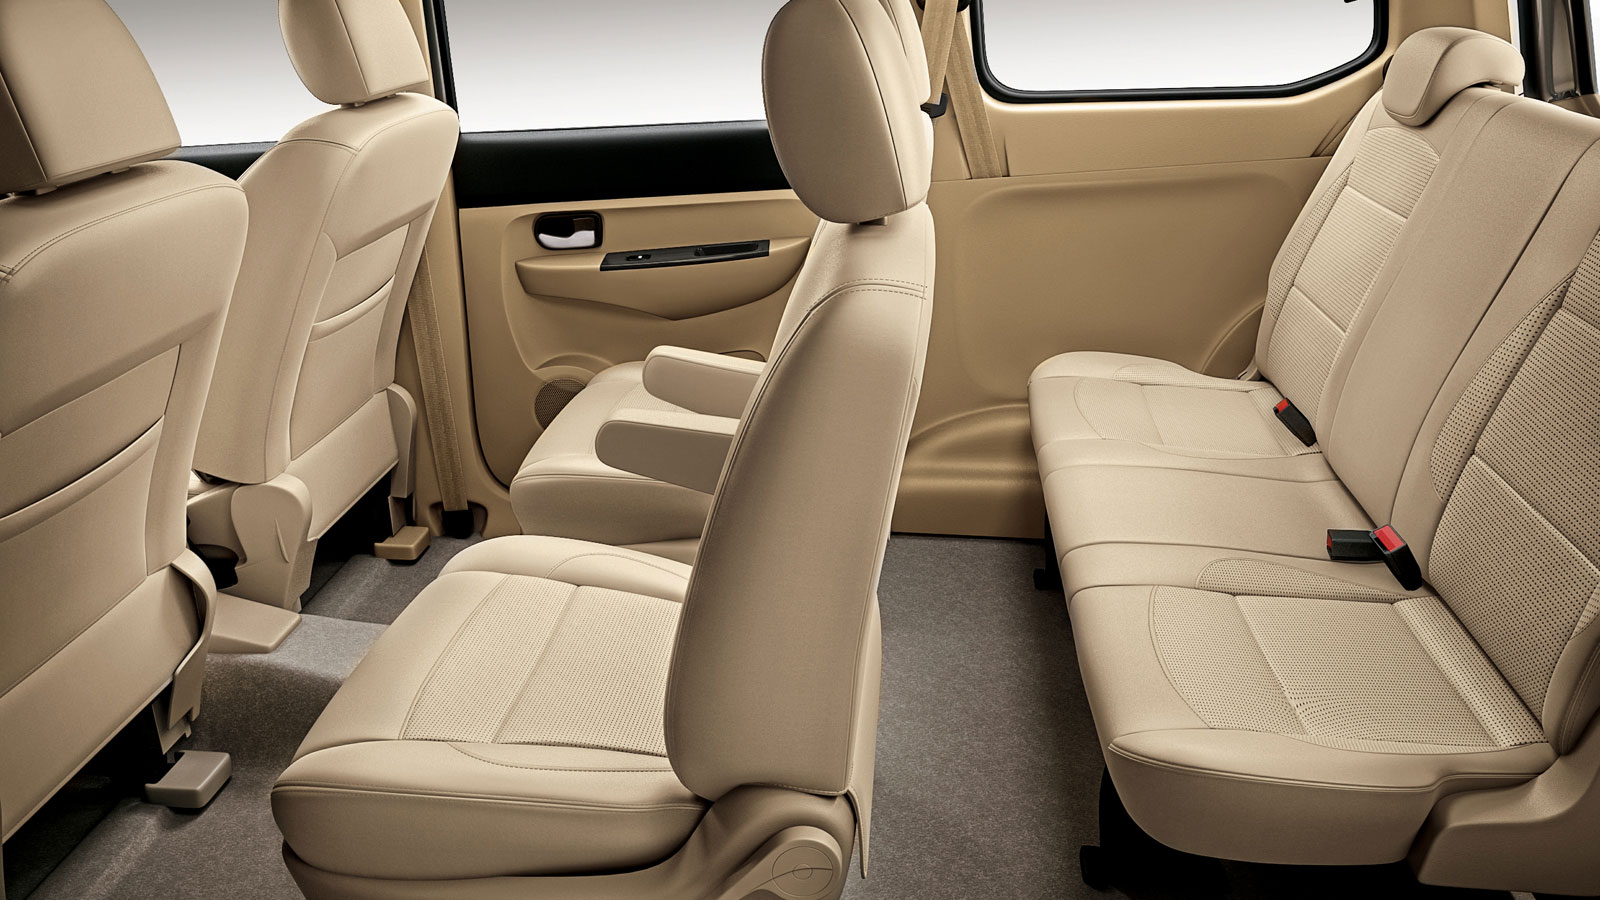 Chevrolet enjoy mpv interior photo gallery chevrolet india for Interior images